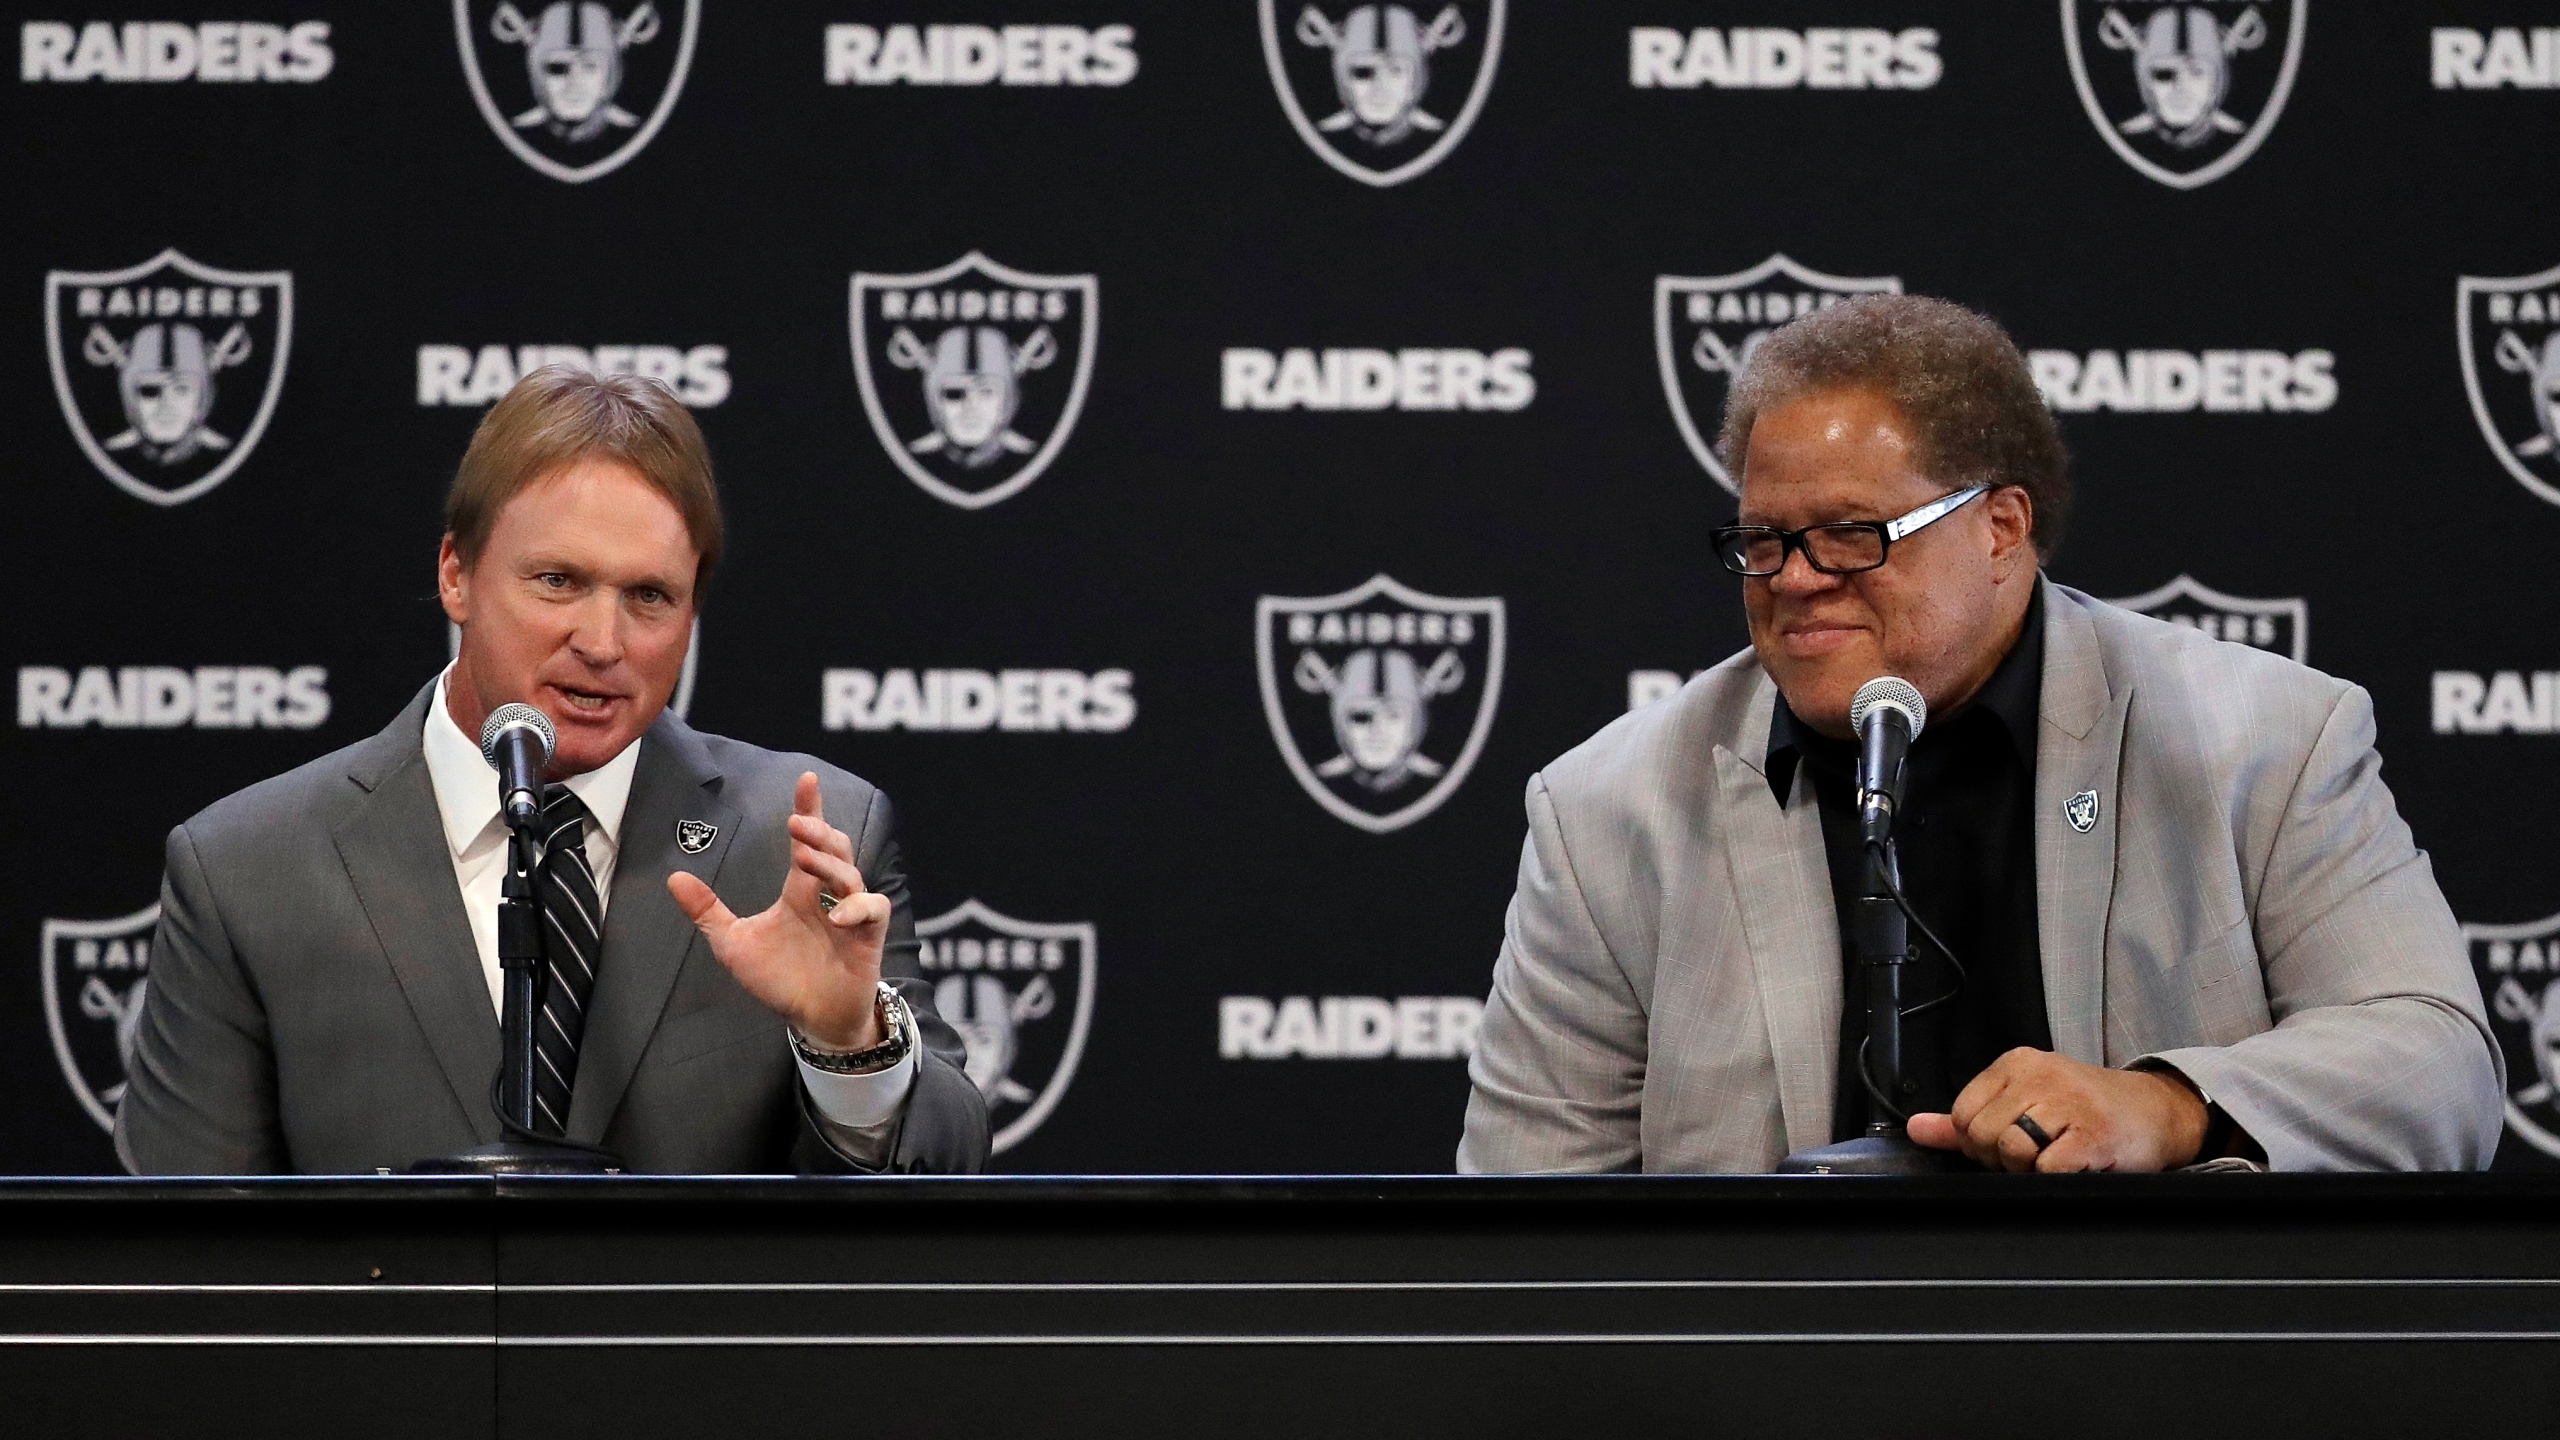 Raiders_Gruden_Football_69428-159532.jpg96361227